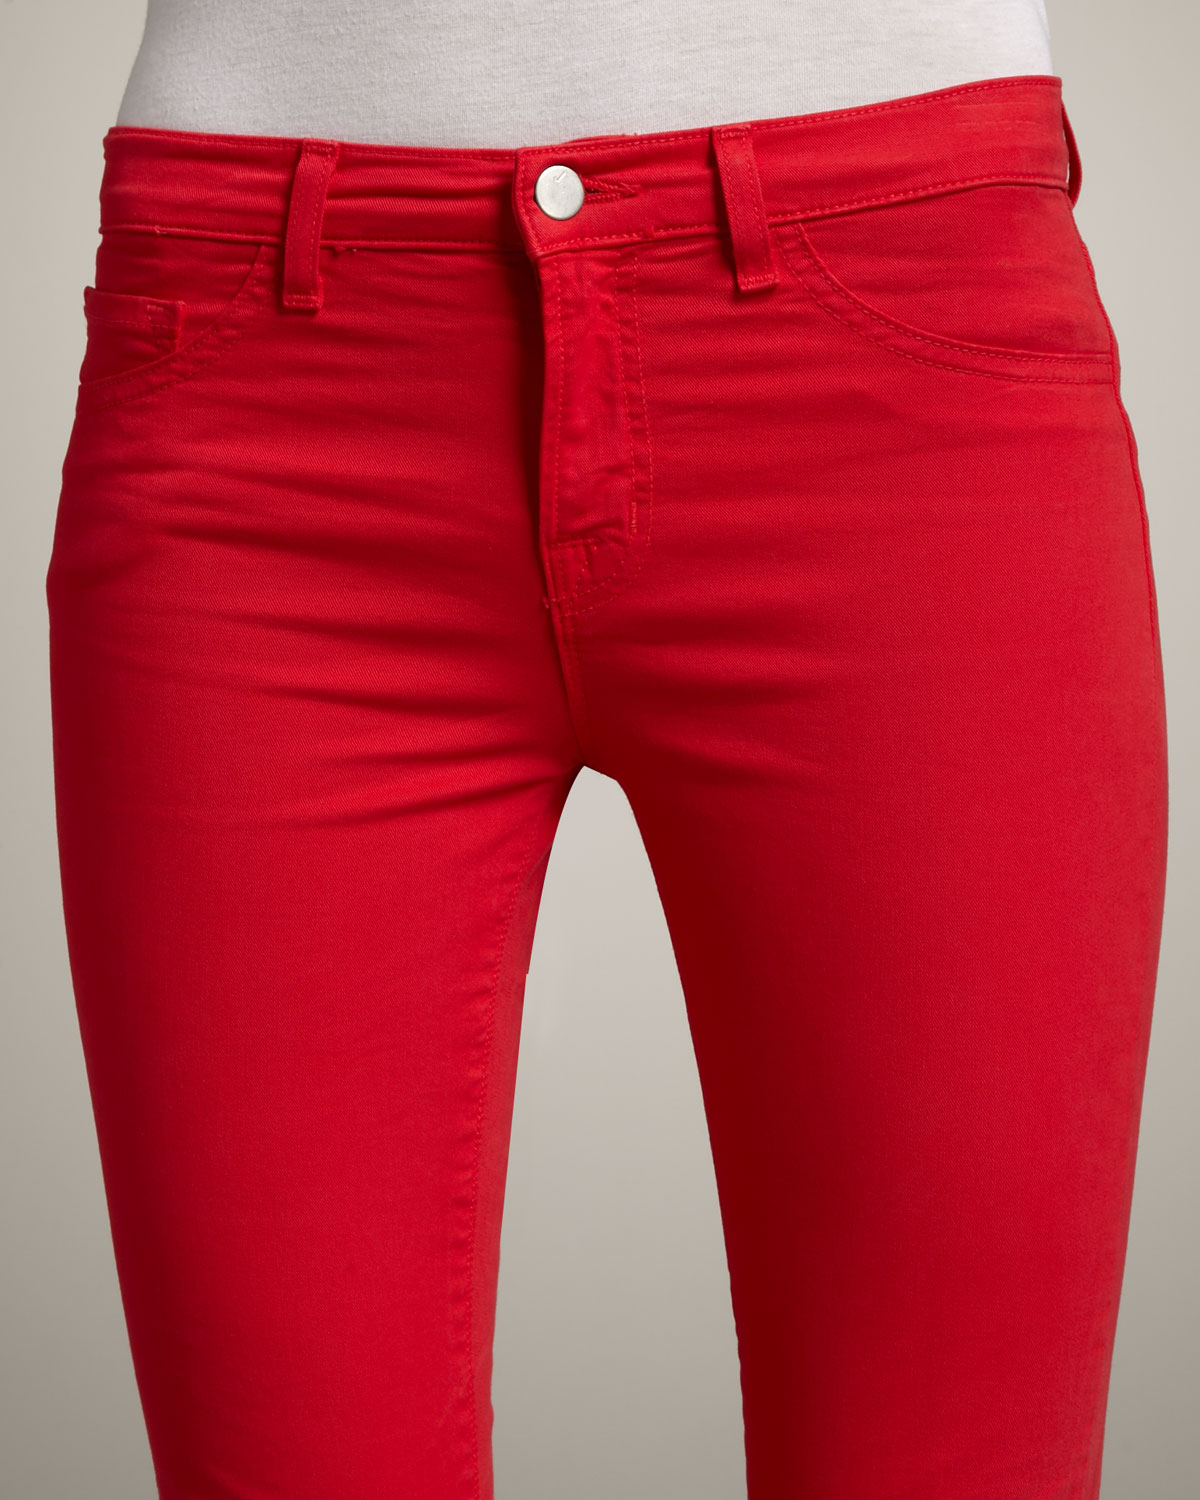 J brand 811 Mid-rise Skinny Twill Jeans, Bright Red in Red   Lyst